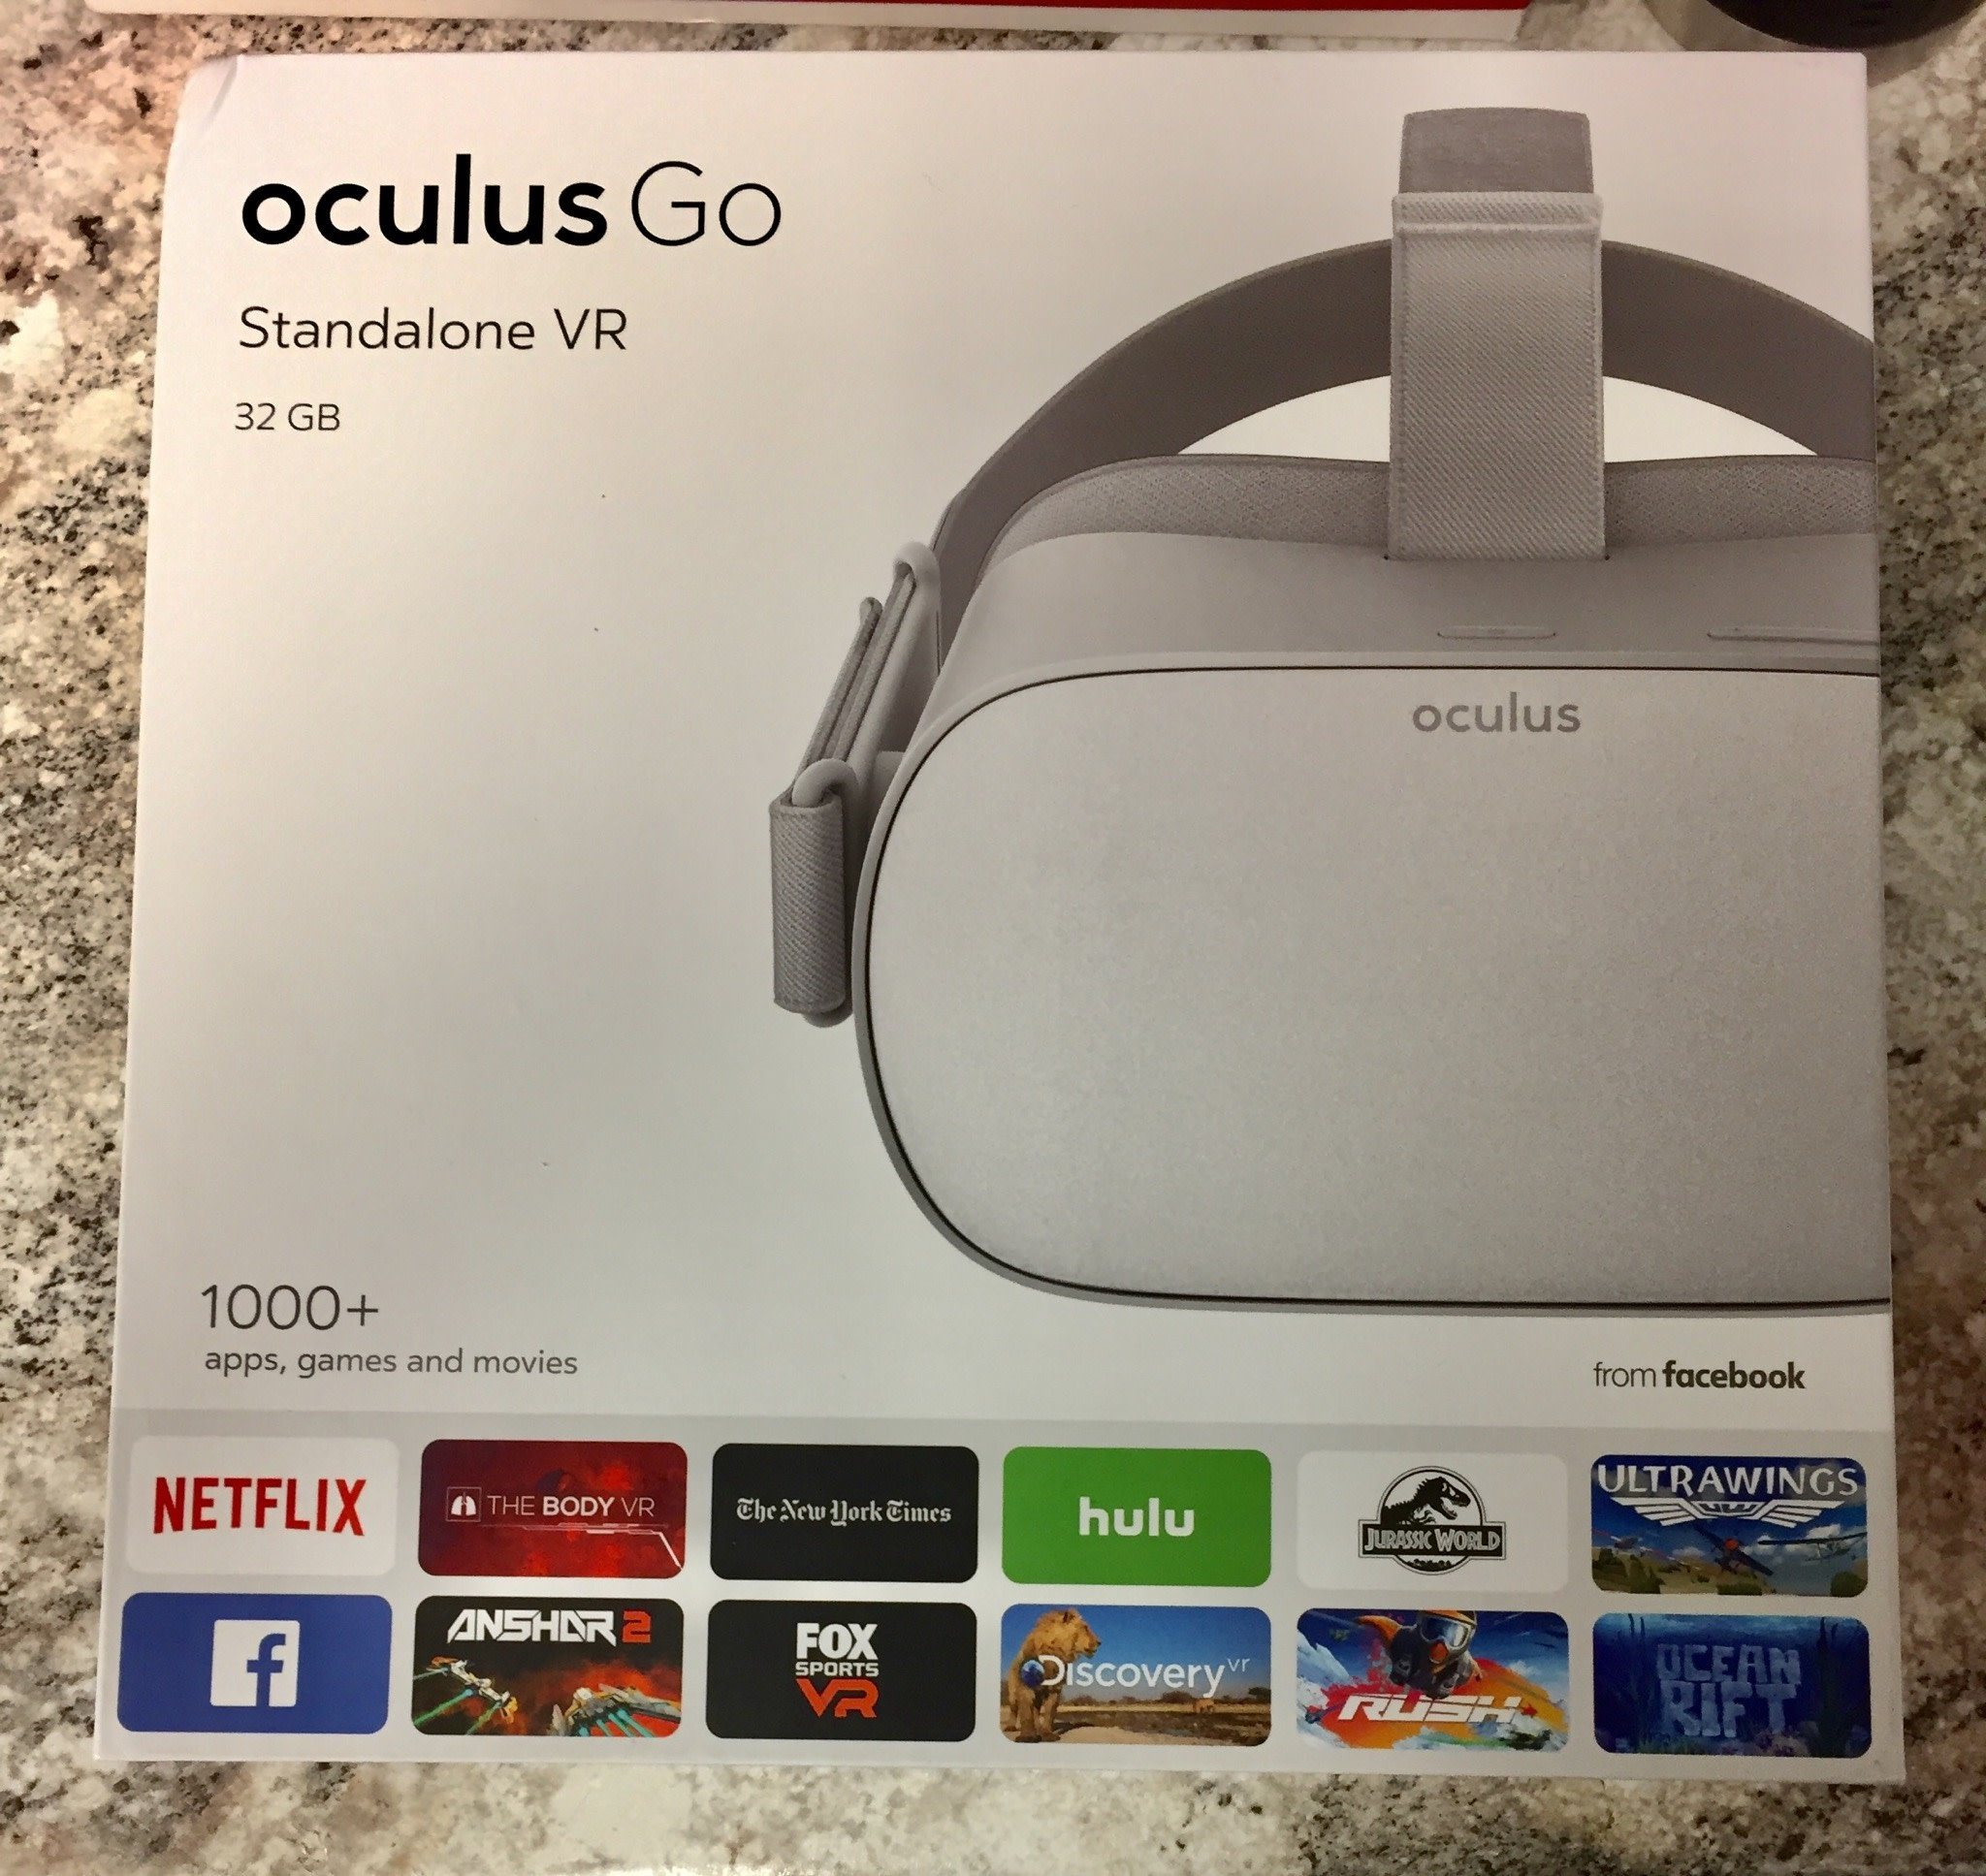 Oculus Go Standalone Virtual Reality Headset - 32GB - Gray - Pre-Owned